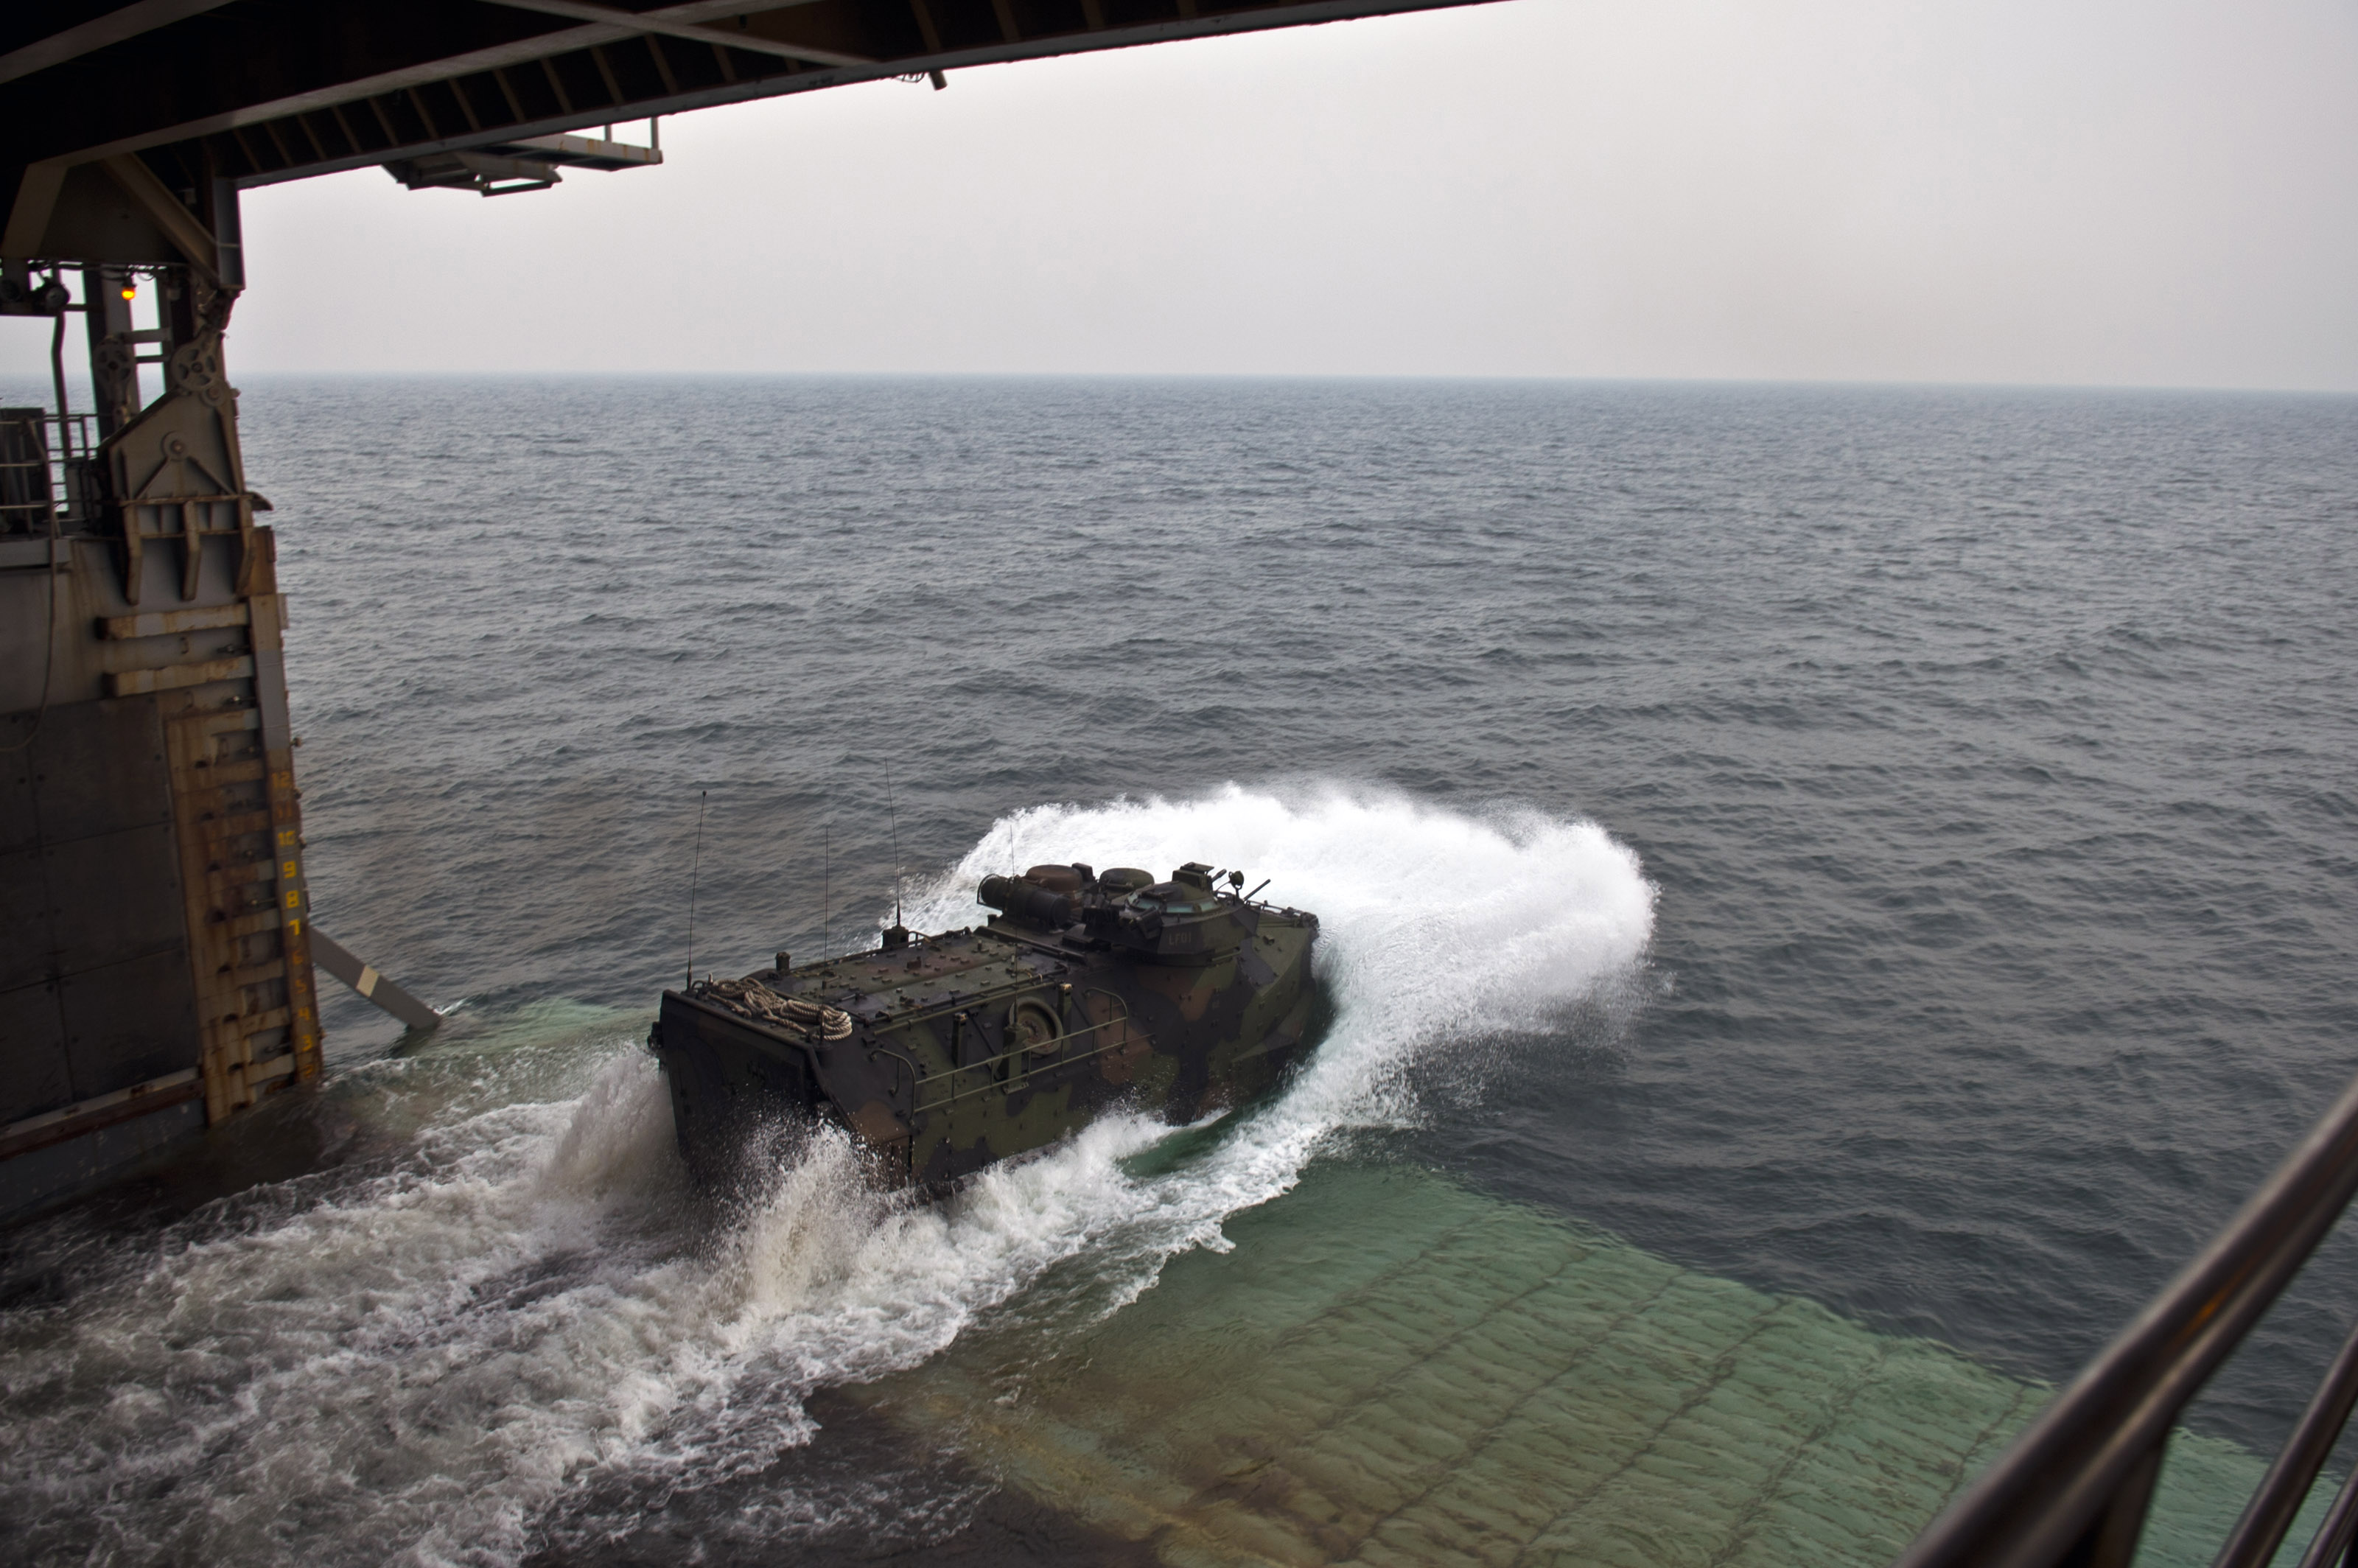 http://upload.wikimedia.org/wikipedia/commons/d/d0/A_U.S._Marine_Corps_assault_amphibious_vehicle_exits_the_well_deck_of_the_amphibious_dock_landing_ship_USS_Tortuga_(LSD_46)_to_participate_in_a_joint_exercise_with_the_Royal_Malaysian_Navy_June_21,_2013,_in_130621-N-IY633-007.jpg